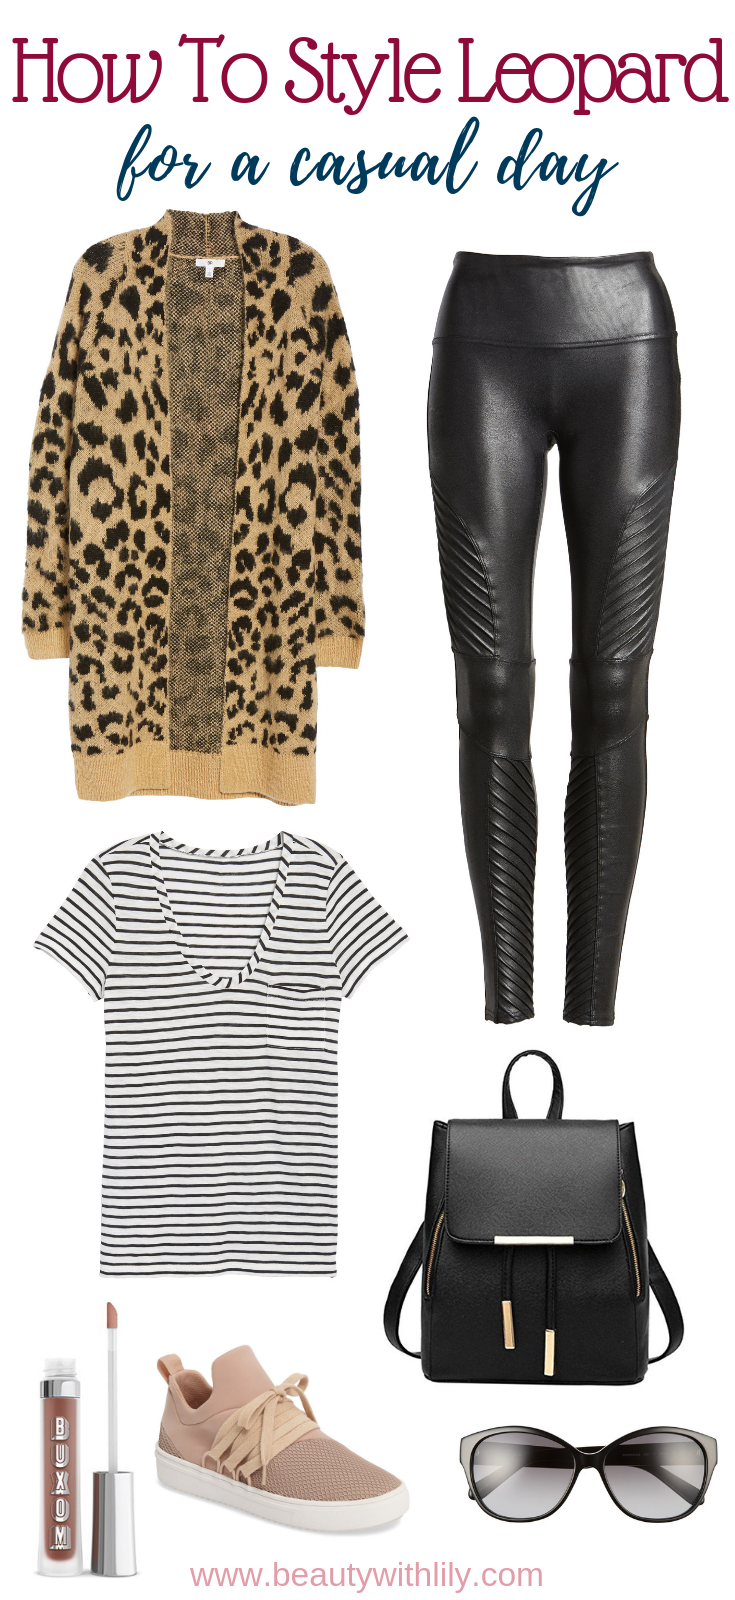 Leopard Print Outfit Ideas // Casual Leopard Print Outfit // How To Style Leopard Print // Fall Outfit Ideas // Fall Fashion | Beauty With Lily